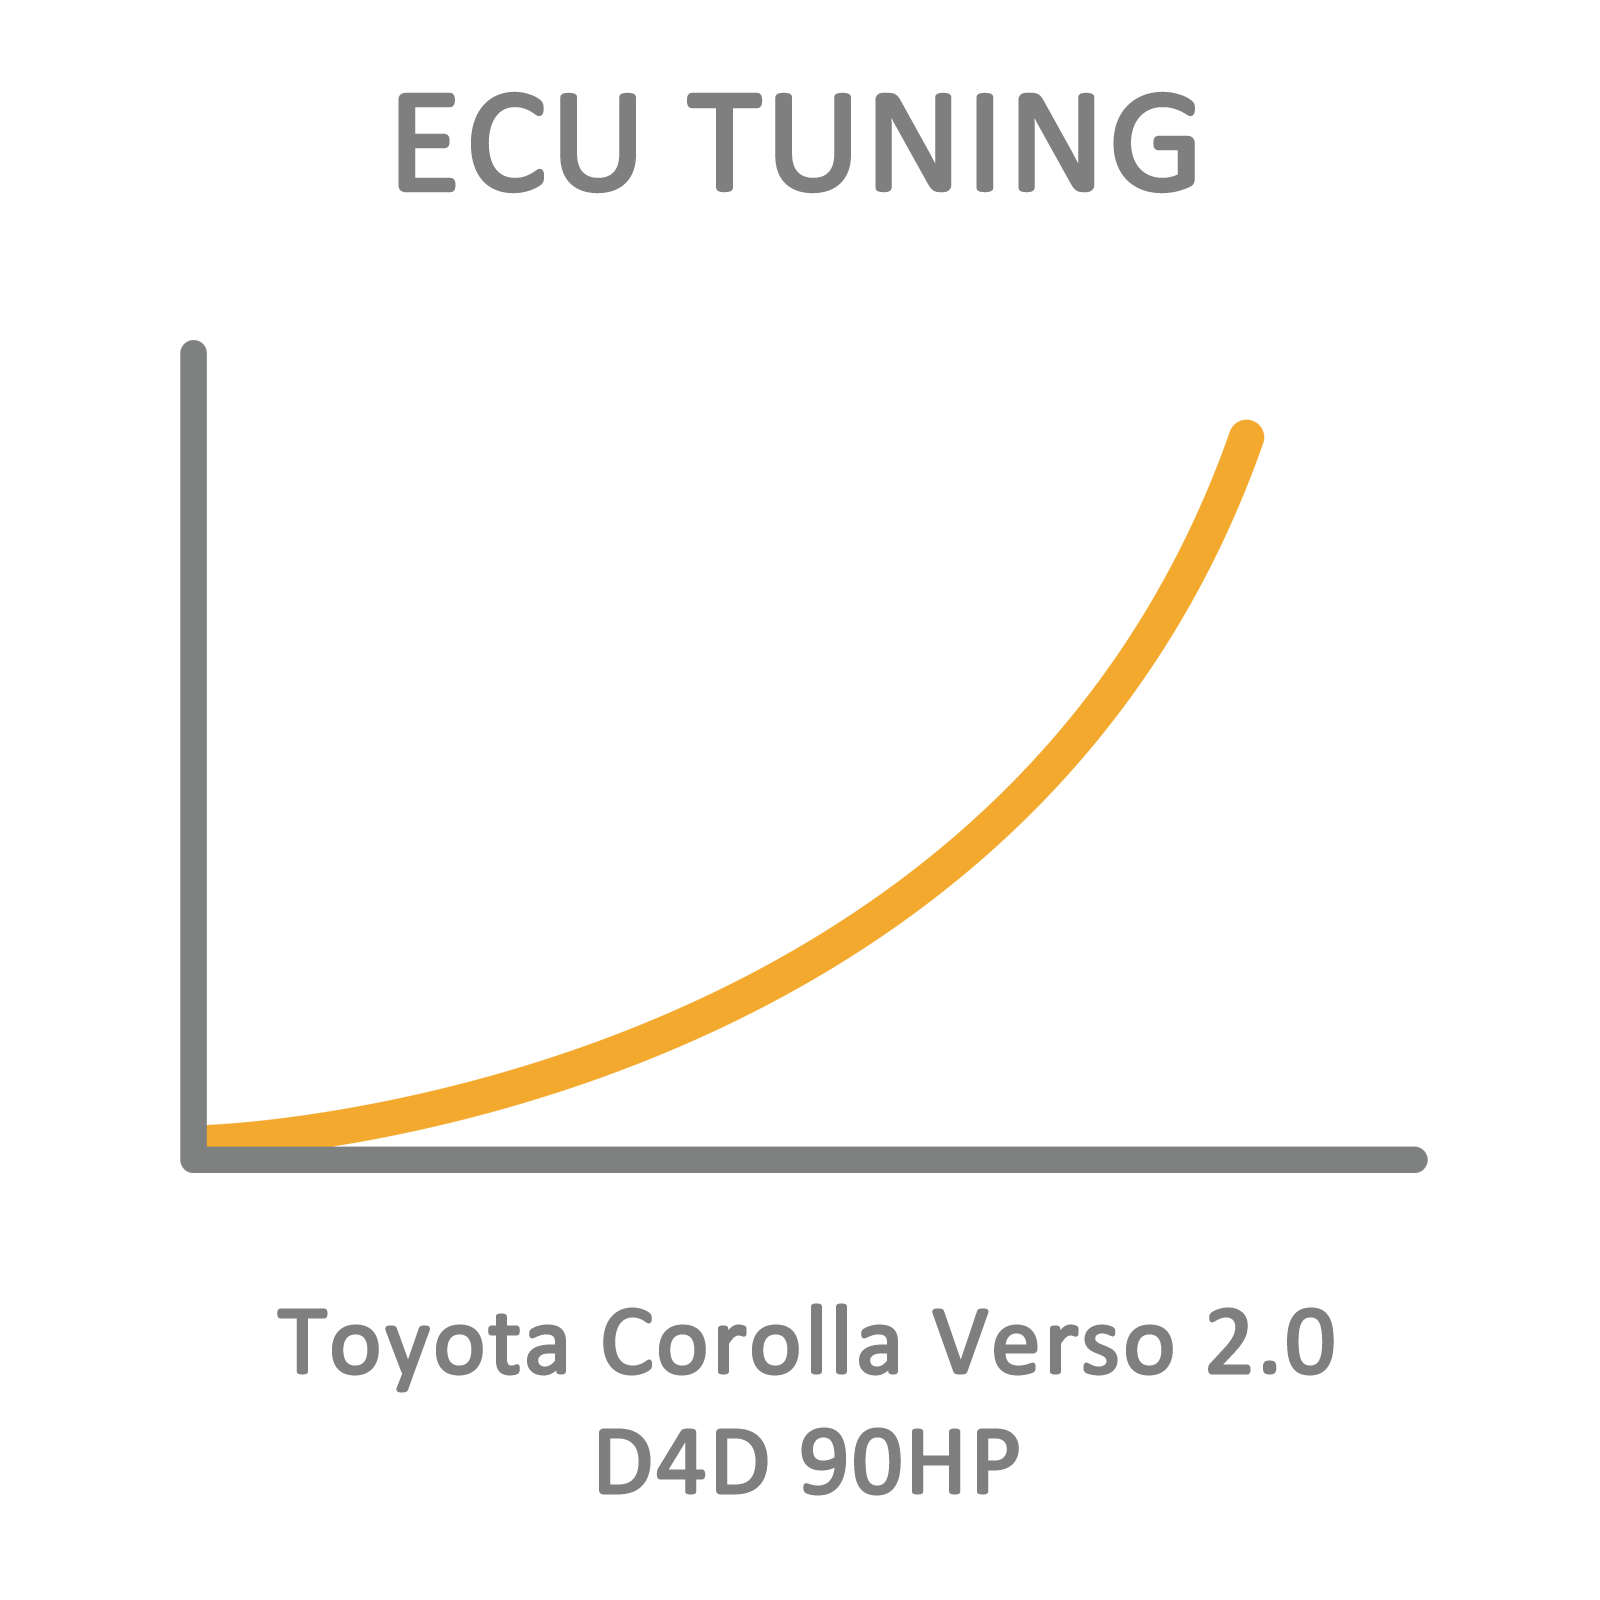 Toyota Corolla Verso 2.0 D4D 90HP ECU Tuning Remapping